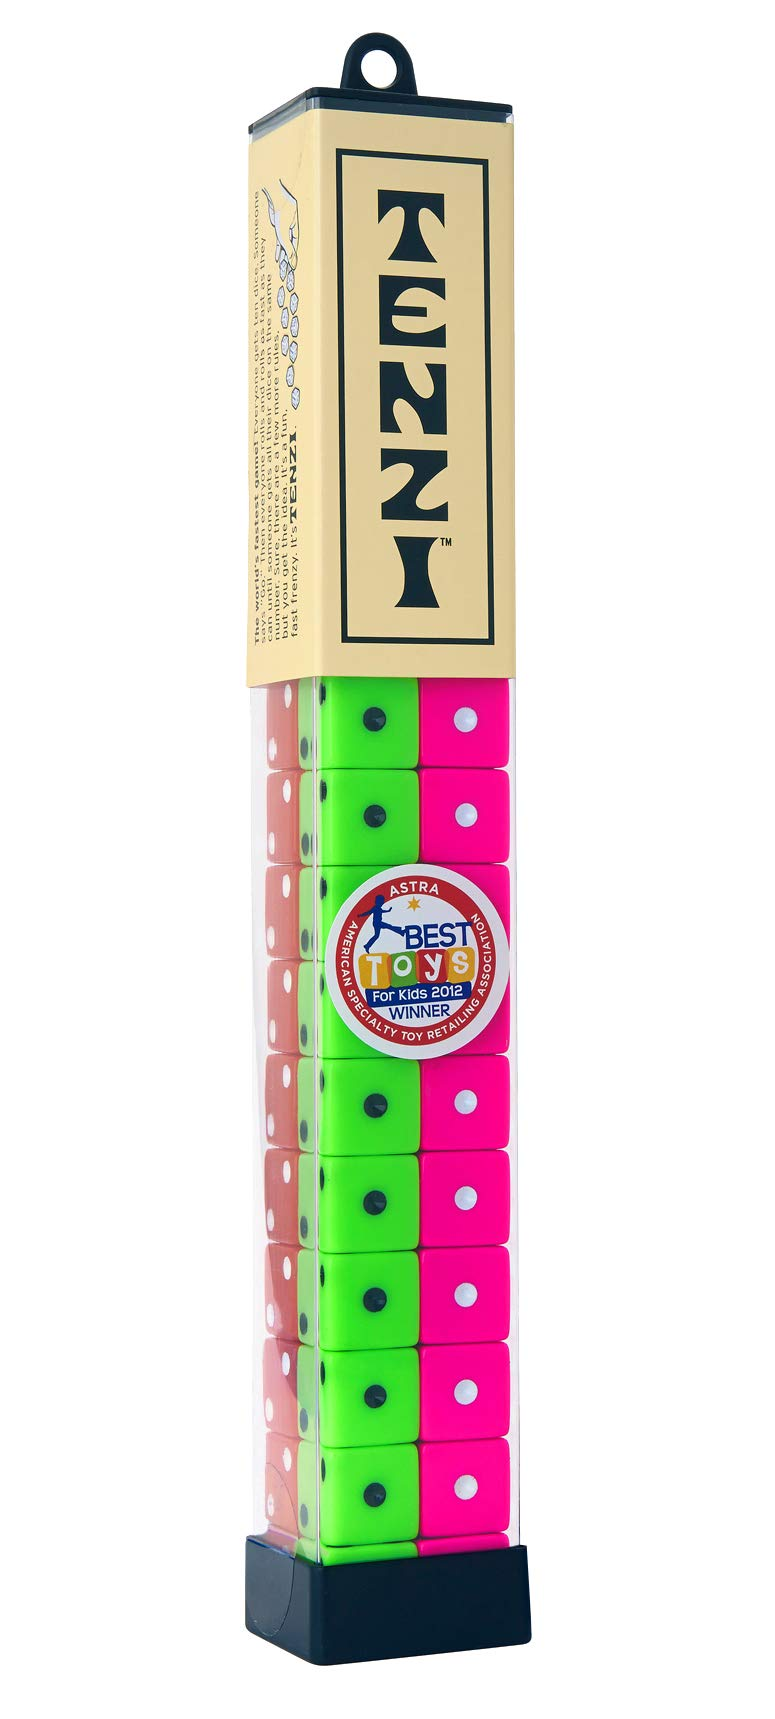 TENZI Dice Party Game - A Fun, Fast Frenzy for the Whole Family - 4 Sets of 10 Colored Dice with Storage Tube - Colors May Vary by TENZI